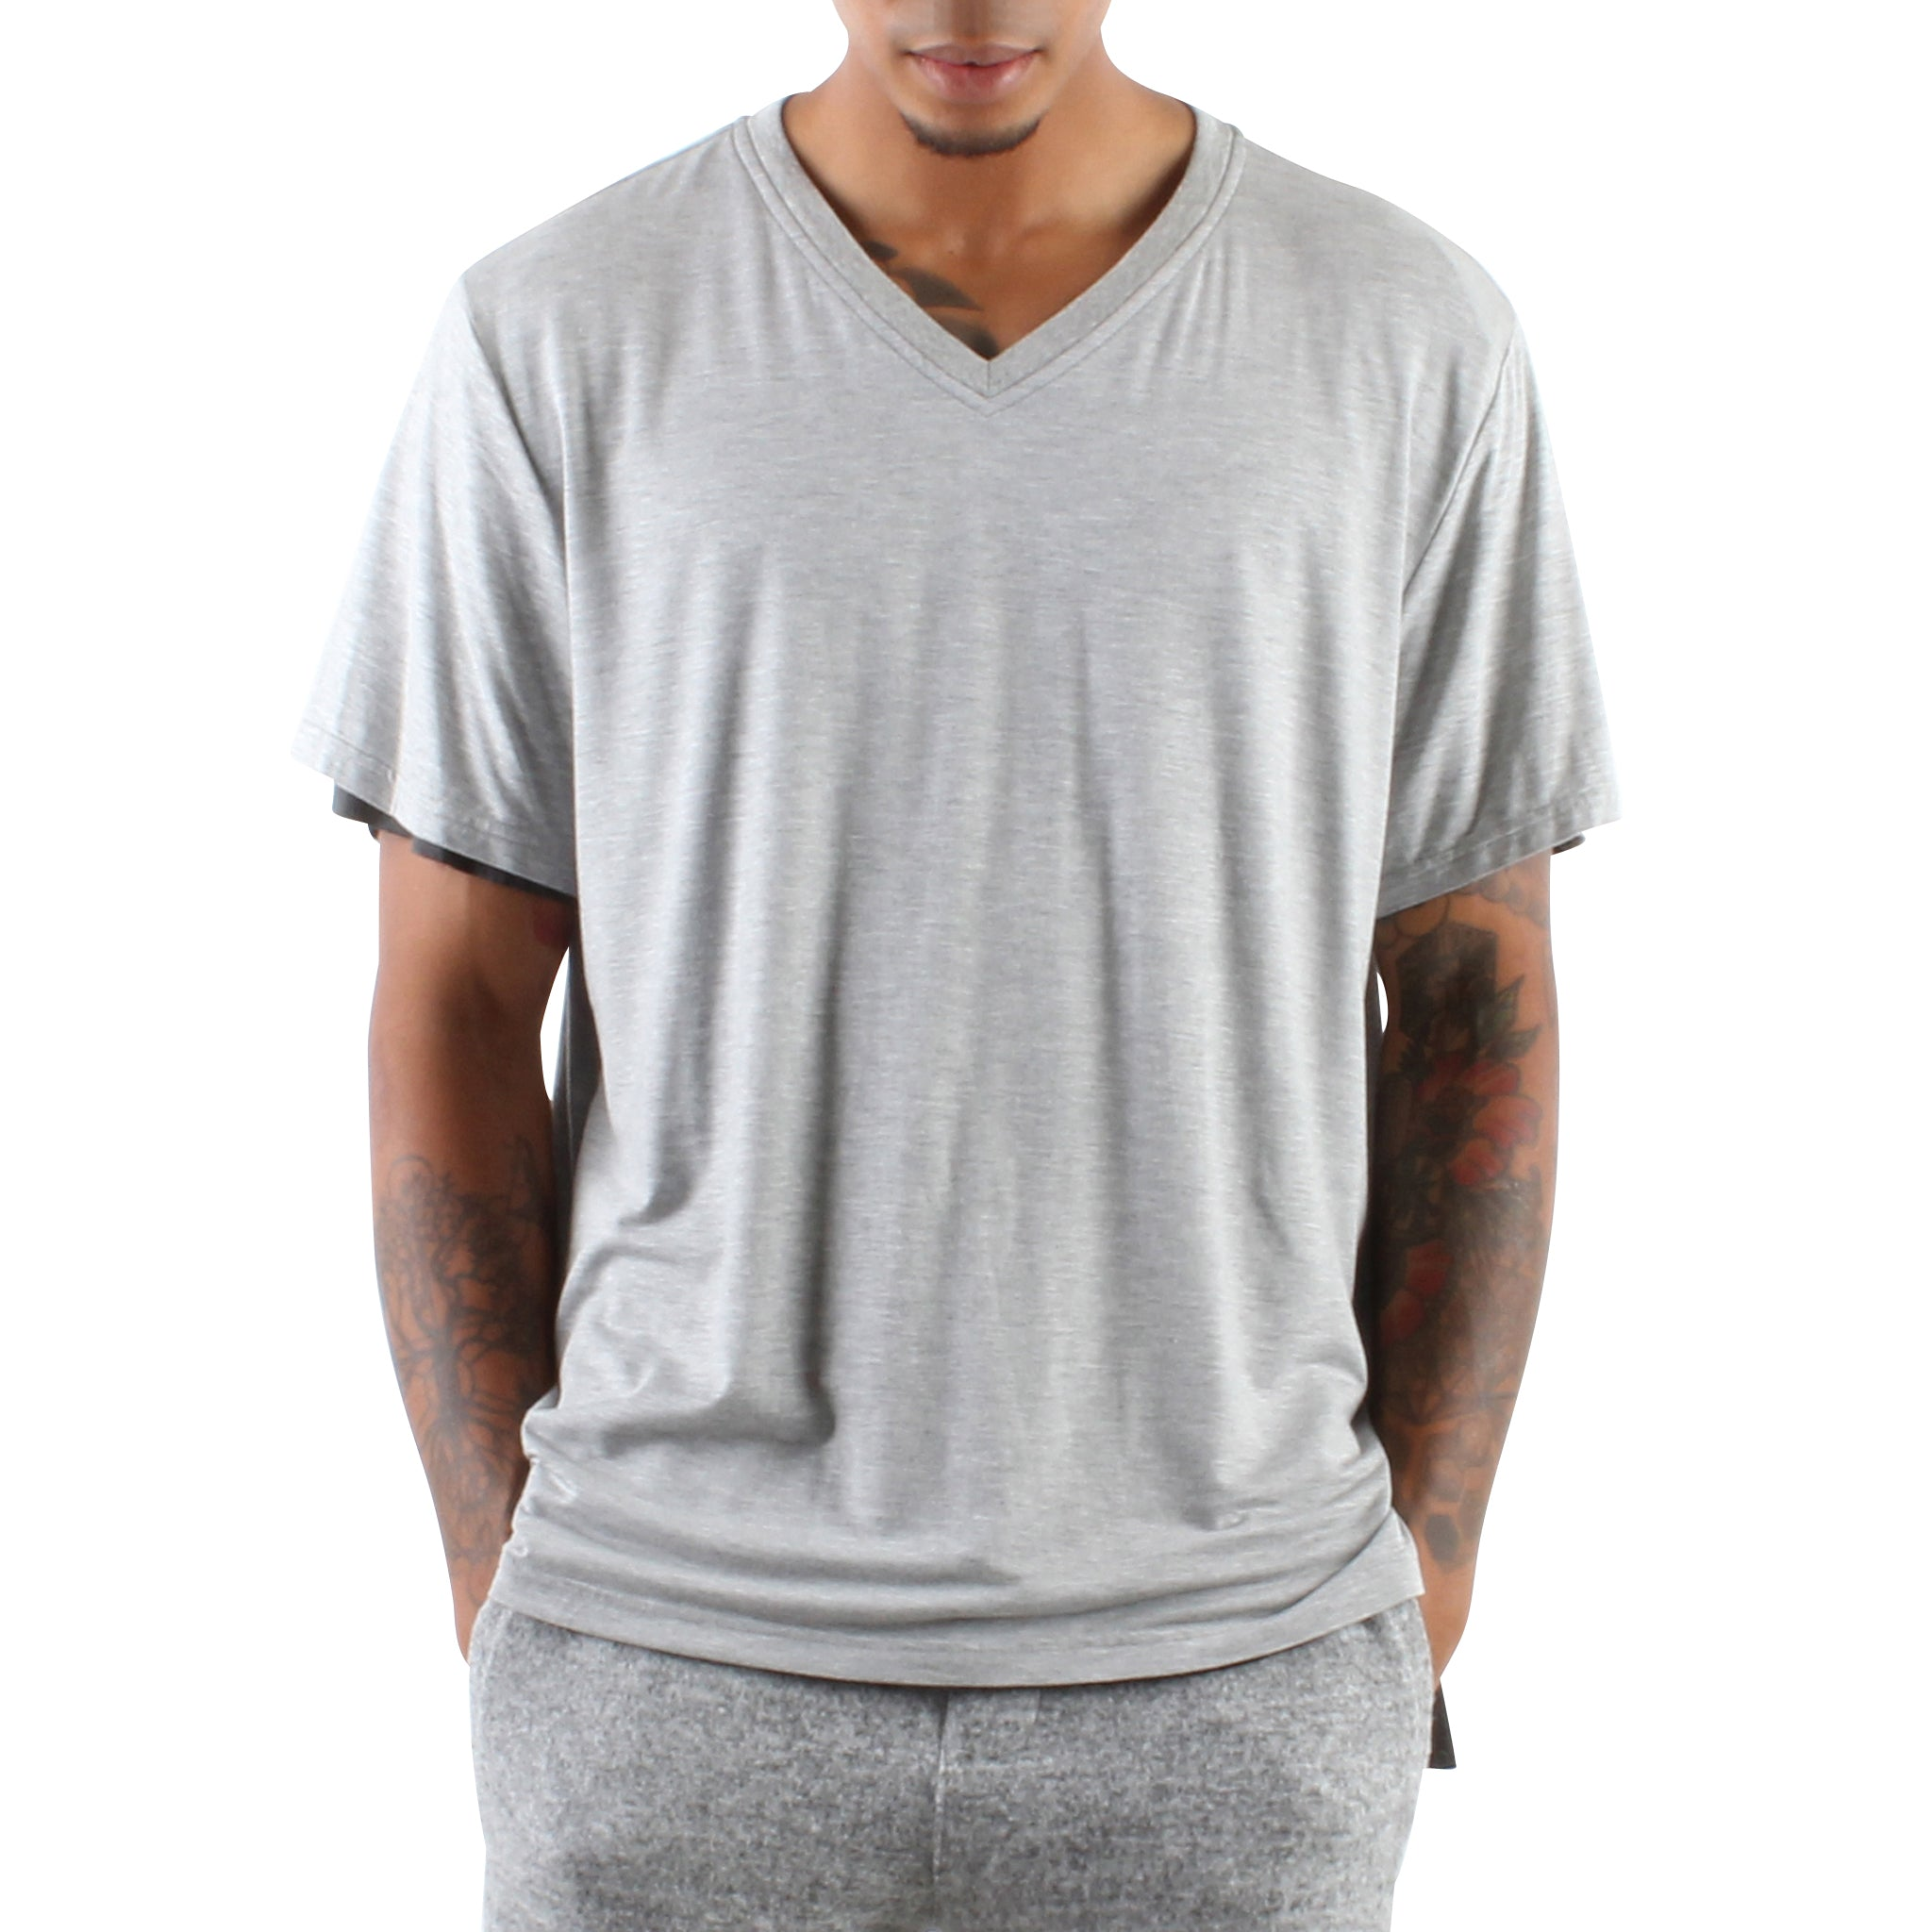 GREY AND CHARCOAL DOUBLE LAYER V-NECK TEE